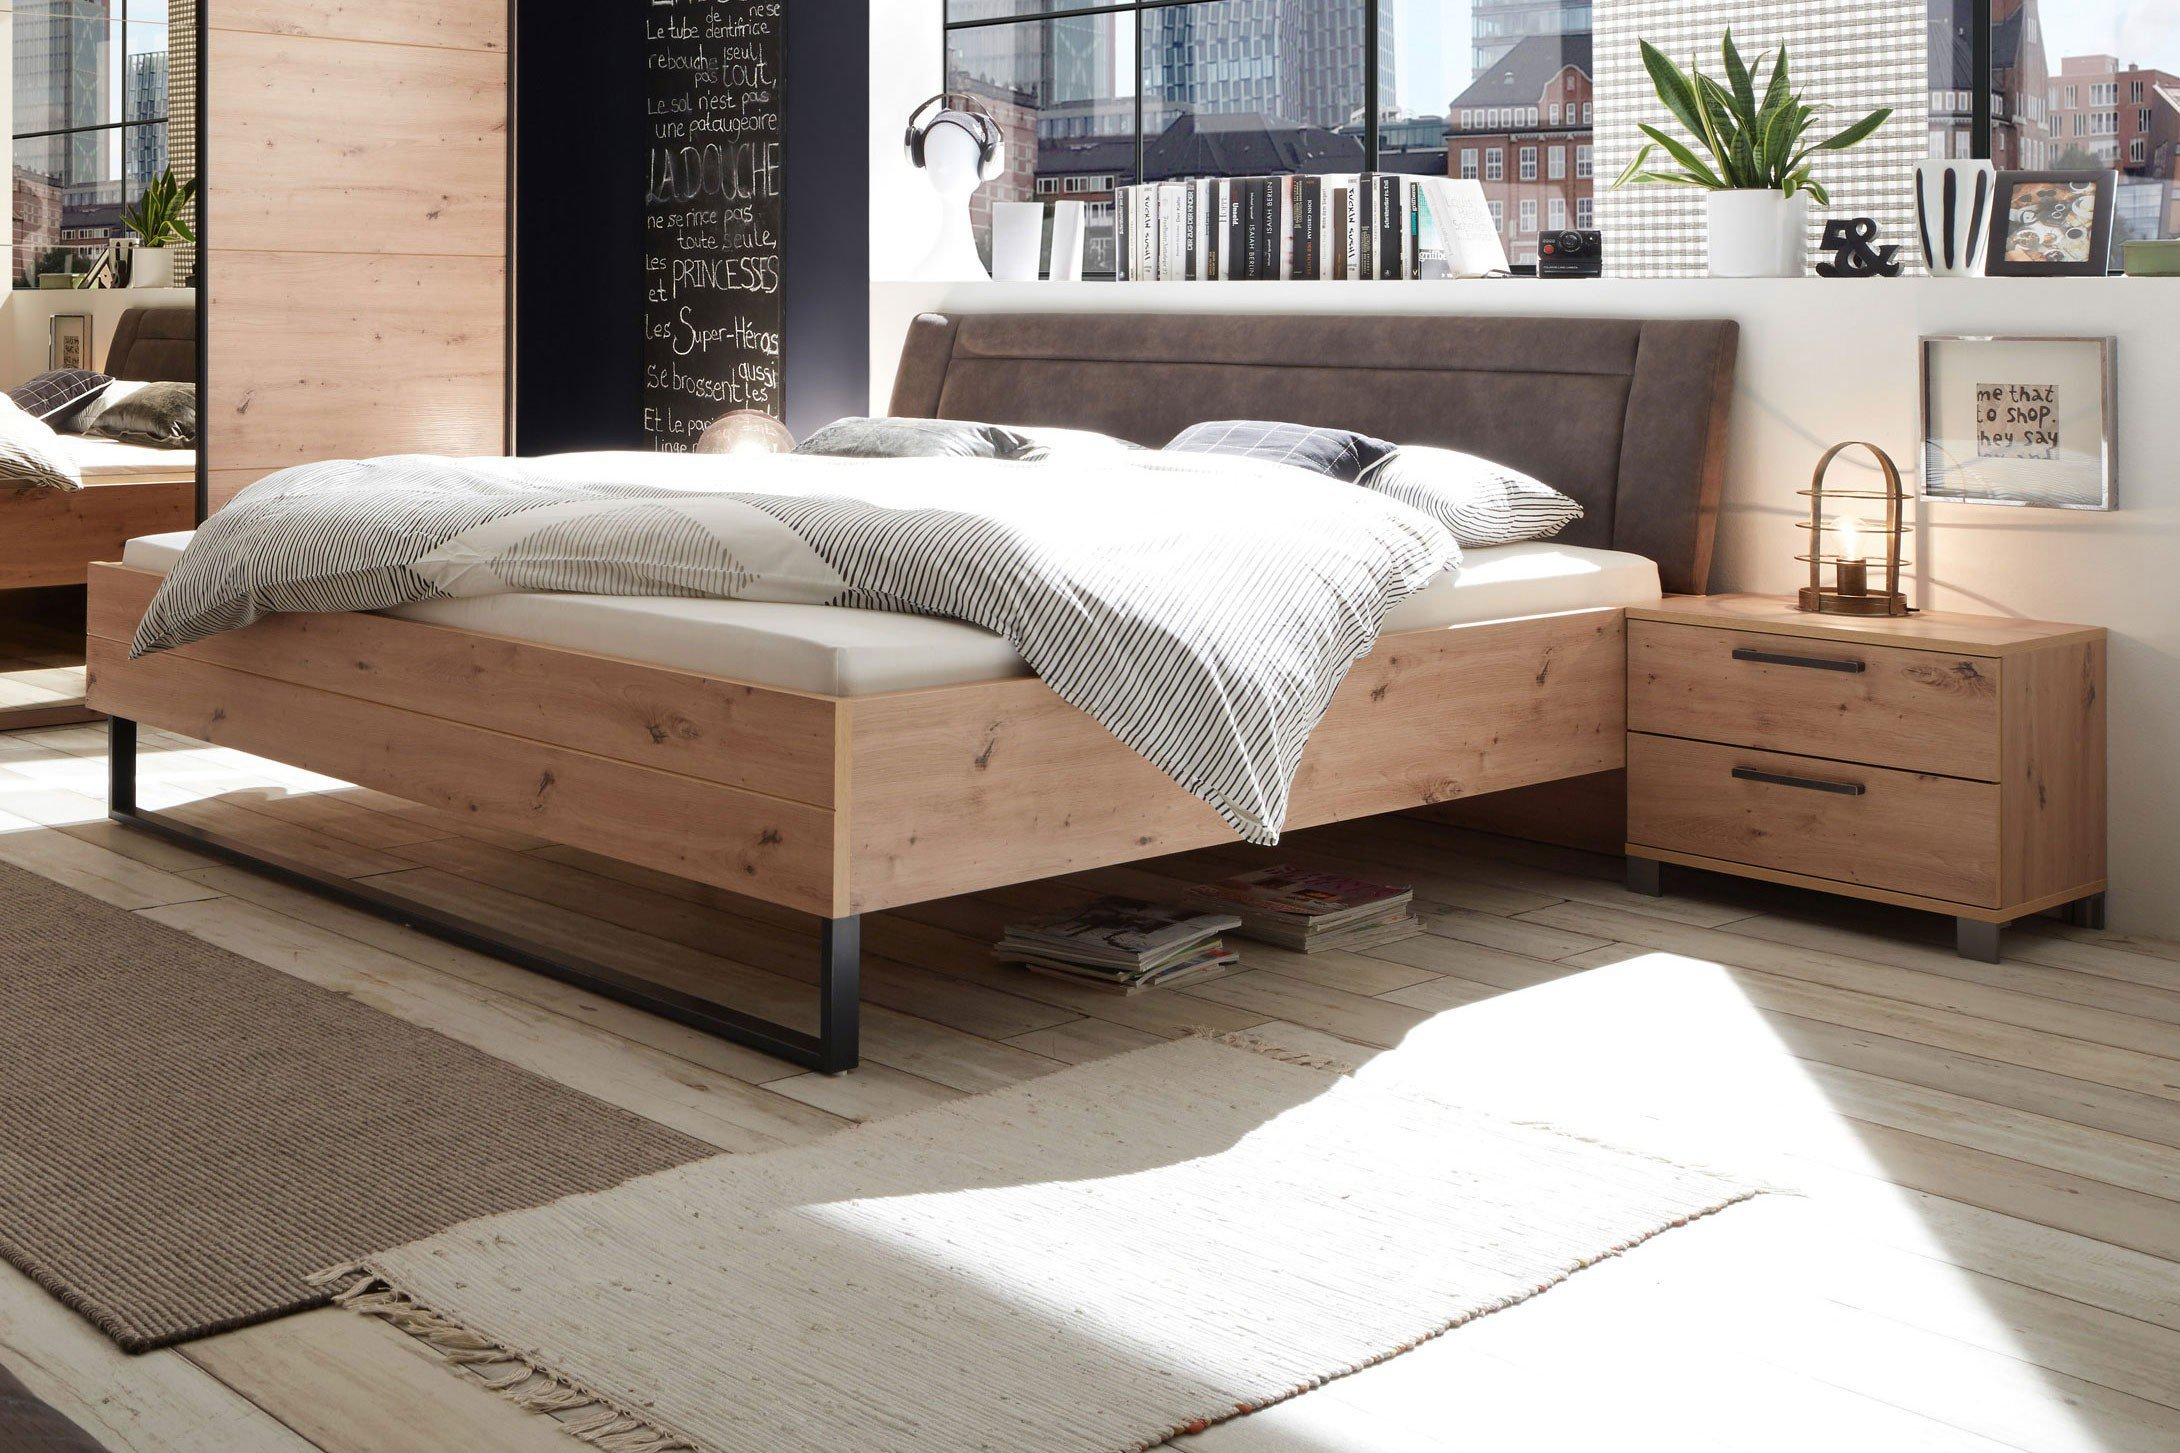 pol power orlando bett nachtschrank set m bel letz ihr online shop. Black Bedroom Furniture Sets. Home Design Ideas